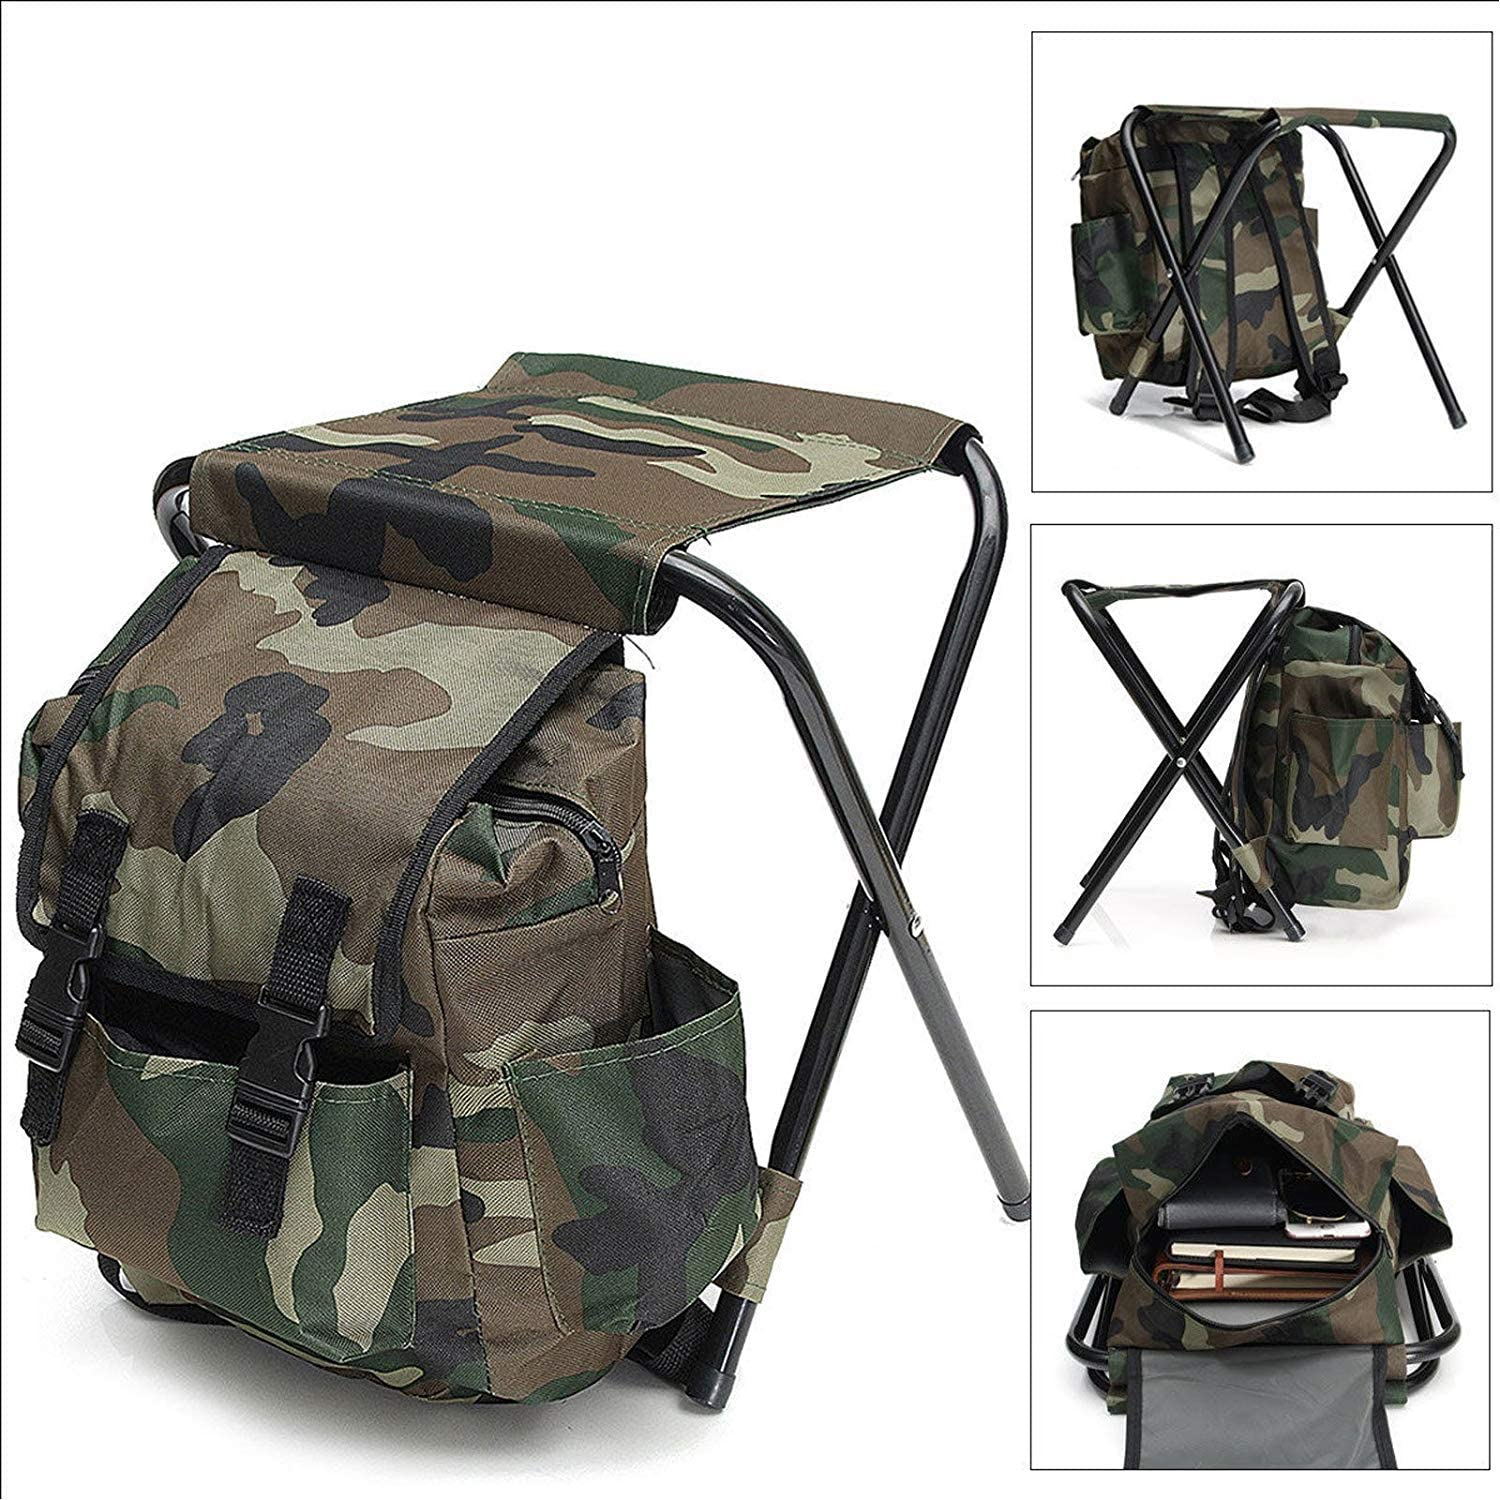 Portable & Folding Camping Chair Stool Backpack, Hiking Camouflage Fishing Backpack Chair, Perfect for Beach BBQ